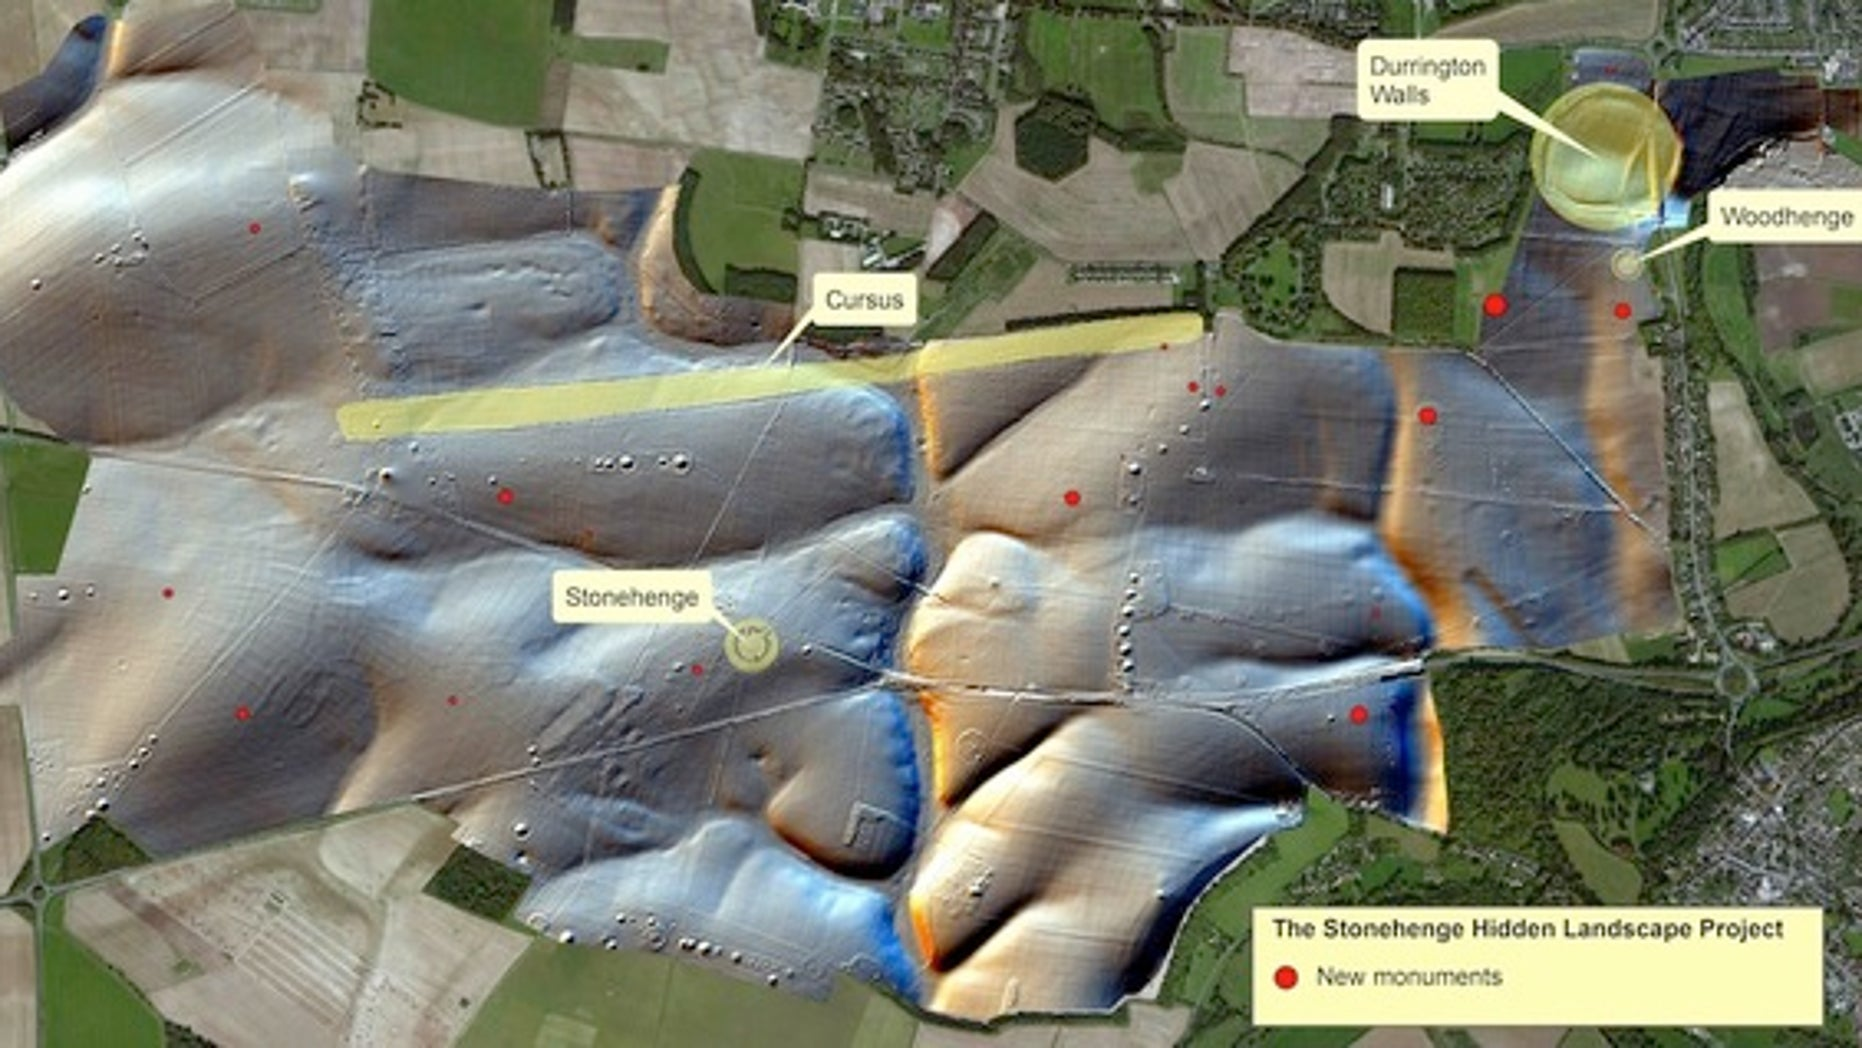 The red circles mark the spots where archaeologists found satellite shrines around Stonehenge.